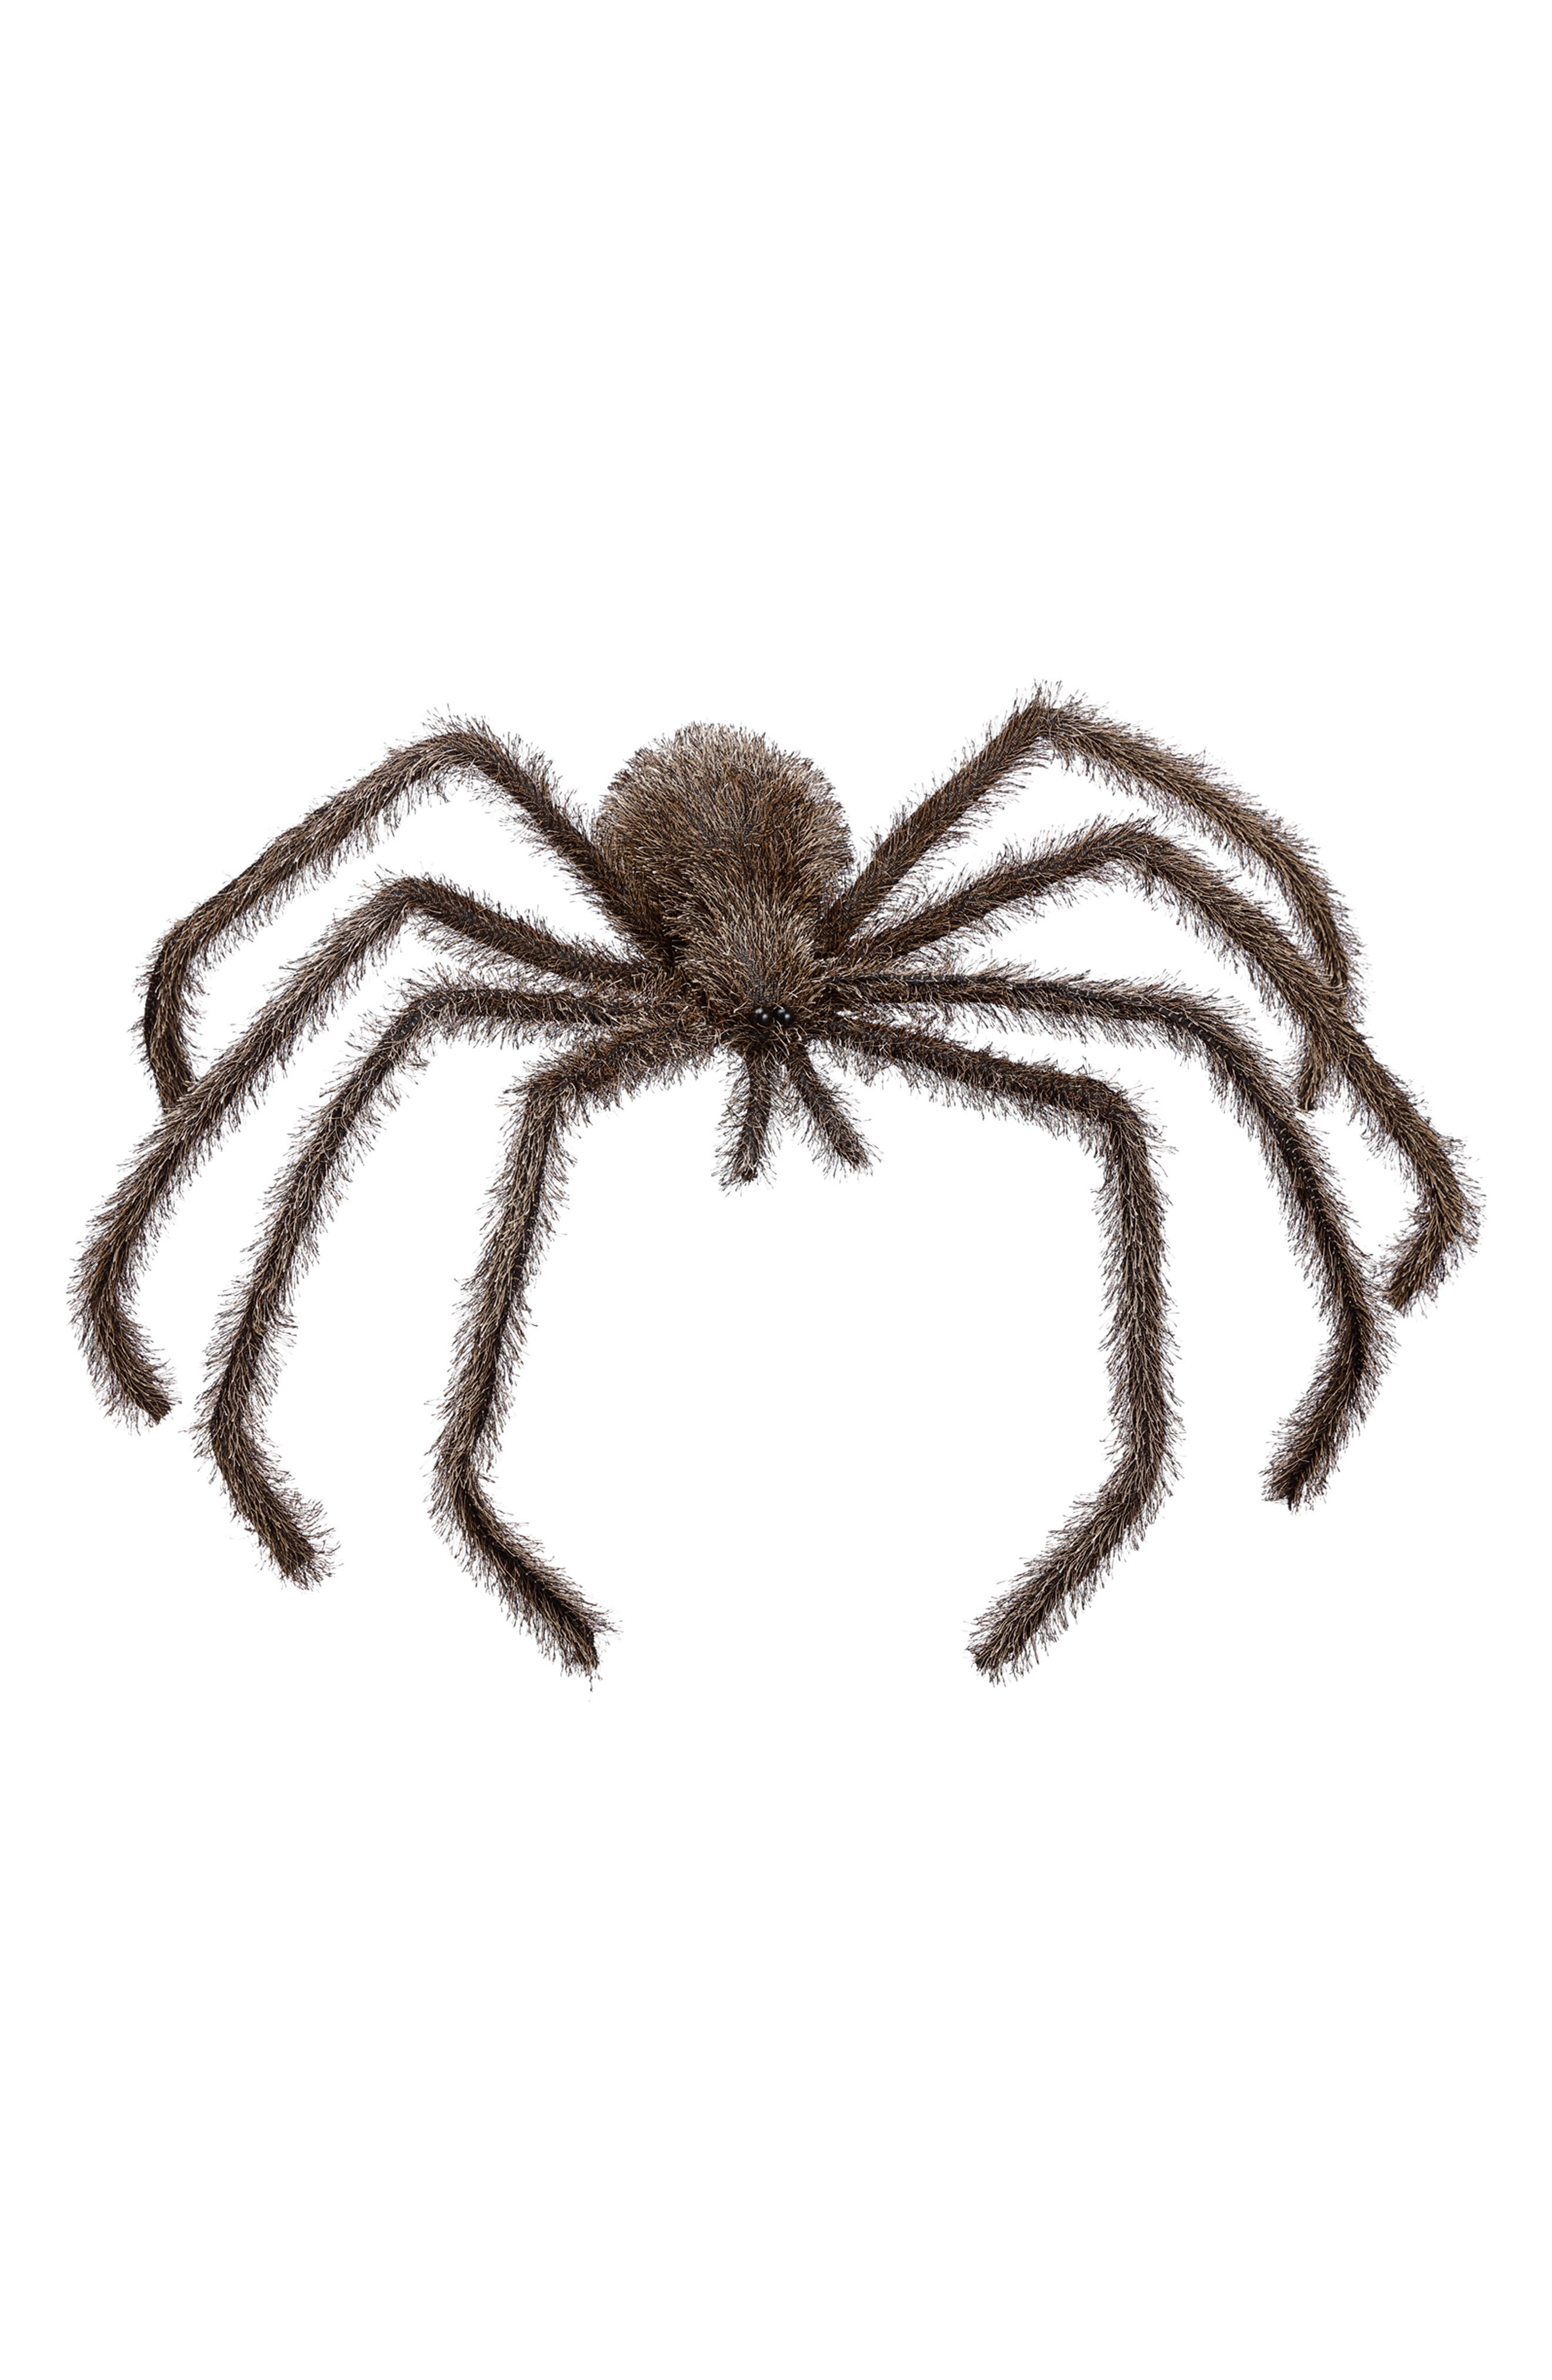 Illicit joyful shrieks from family and friends every time they spot this furry spider standing on long wire legs. Style Name: Allstate Spider Decoration. Style Number: 6082311. Available in stores.